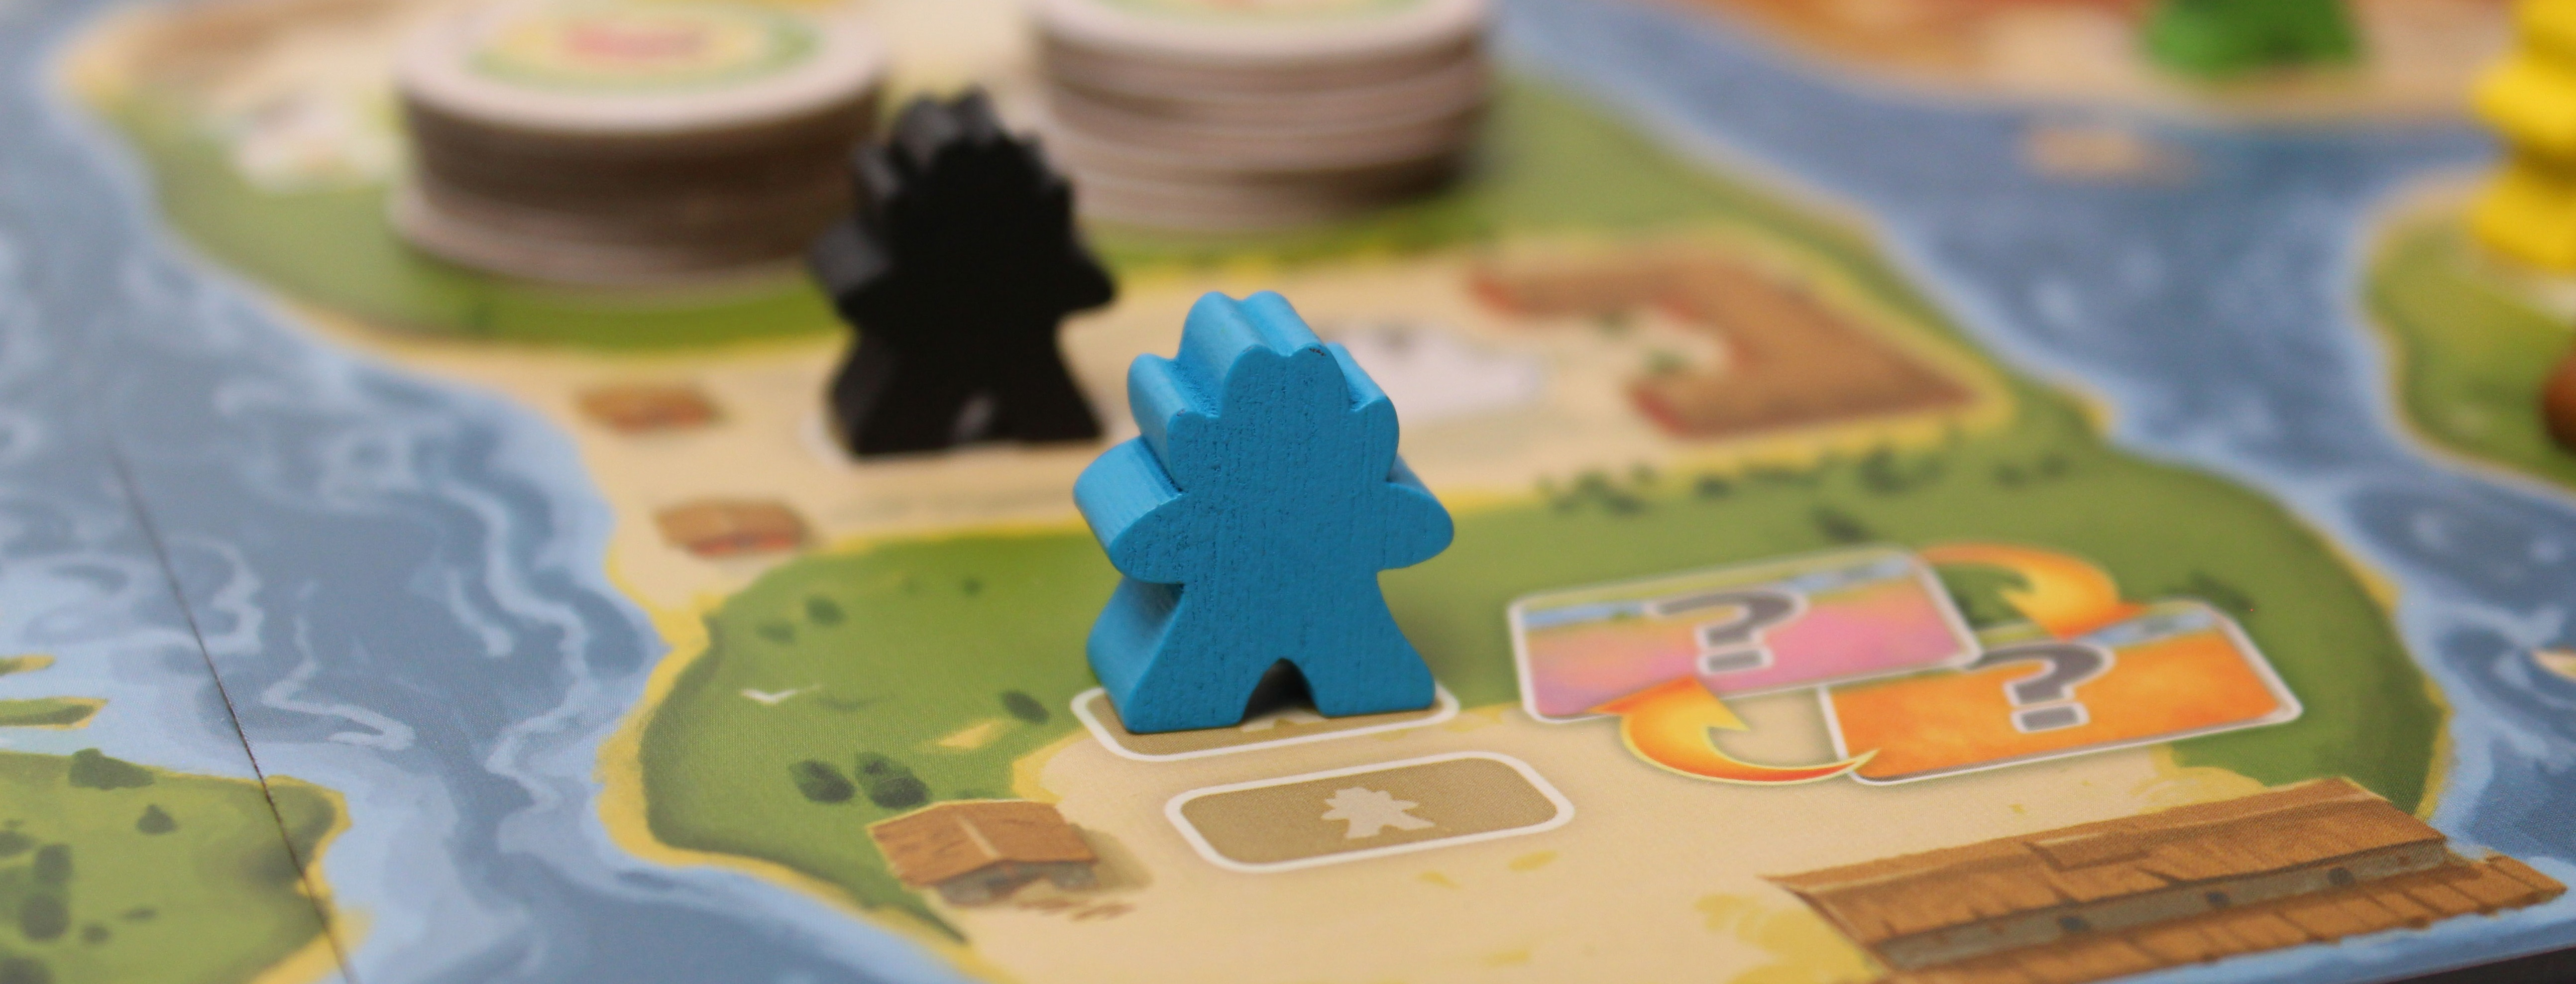 Close-up of game board with river art and multicolored meeples